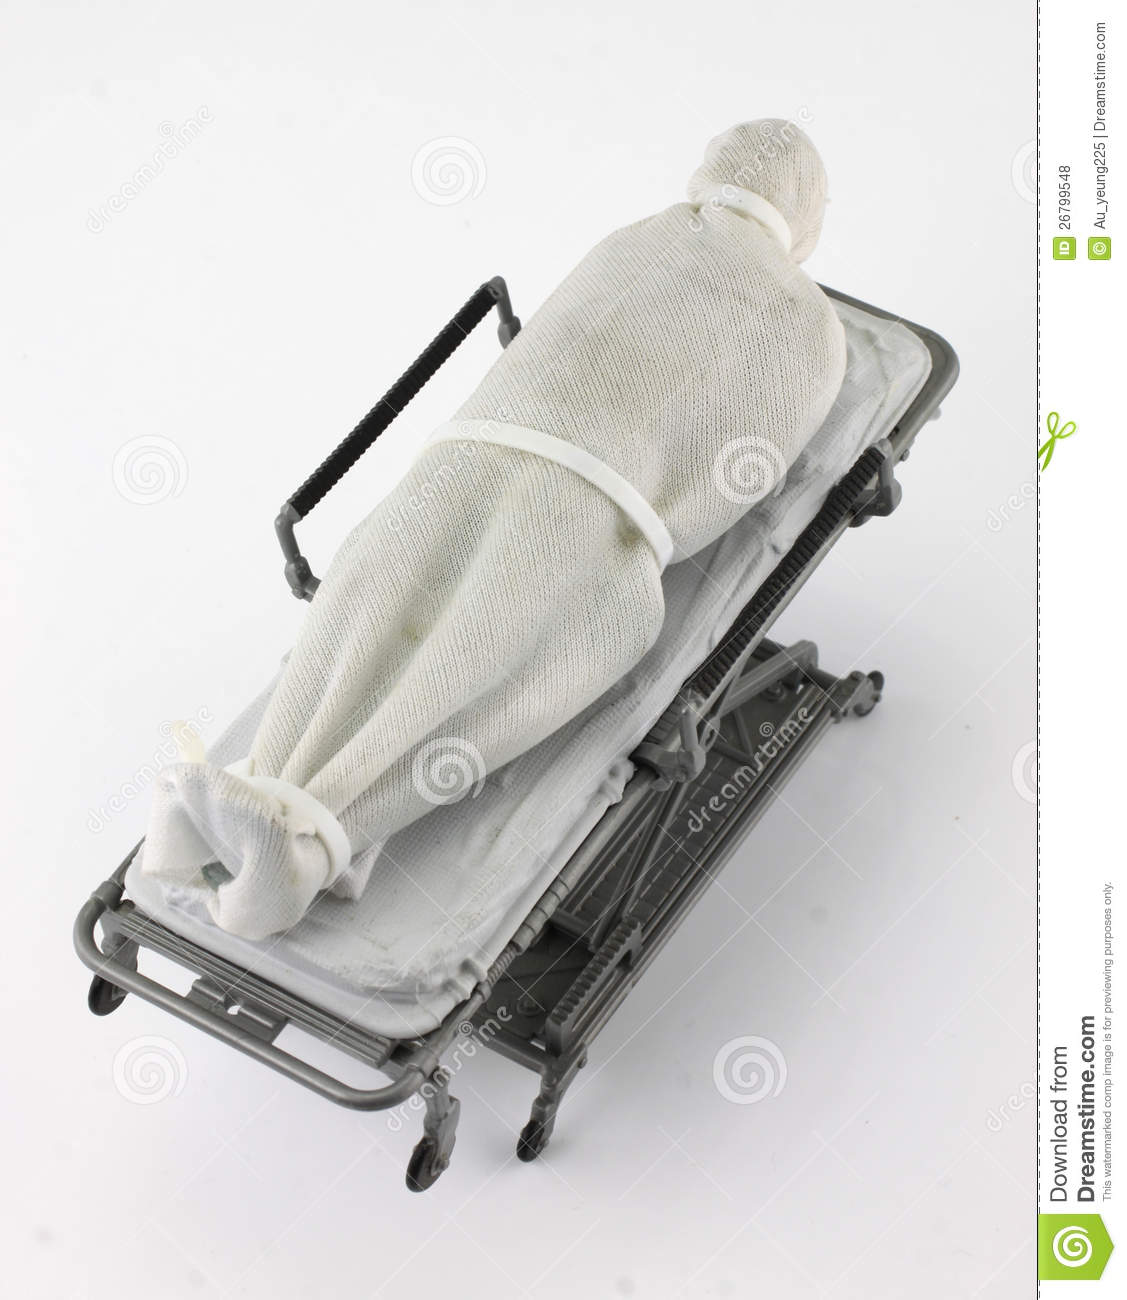 Dead person on hospital gurney royalty free stock photos image - Dead Person On Hospital Gurney Royalty Free Stock Photos